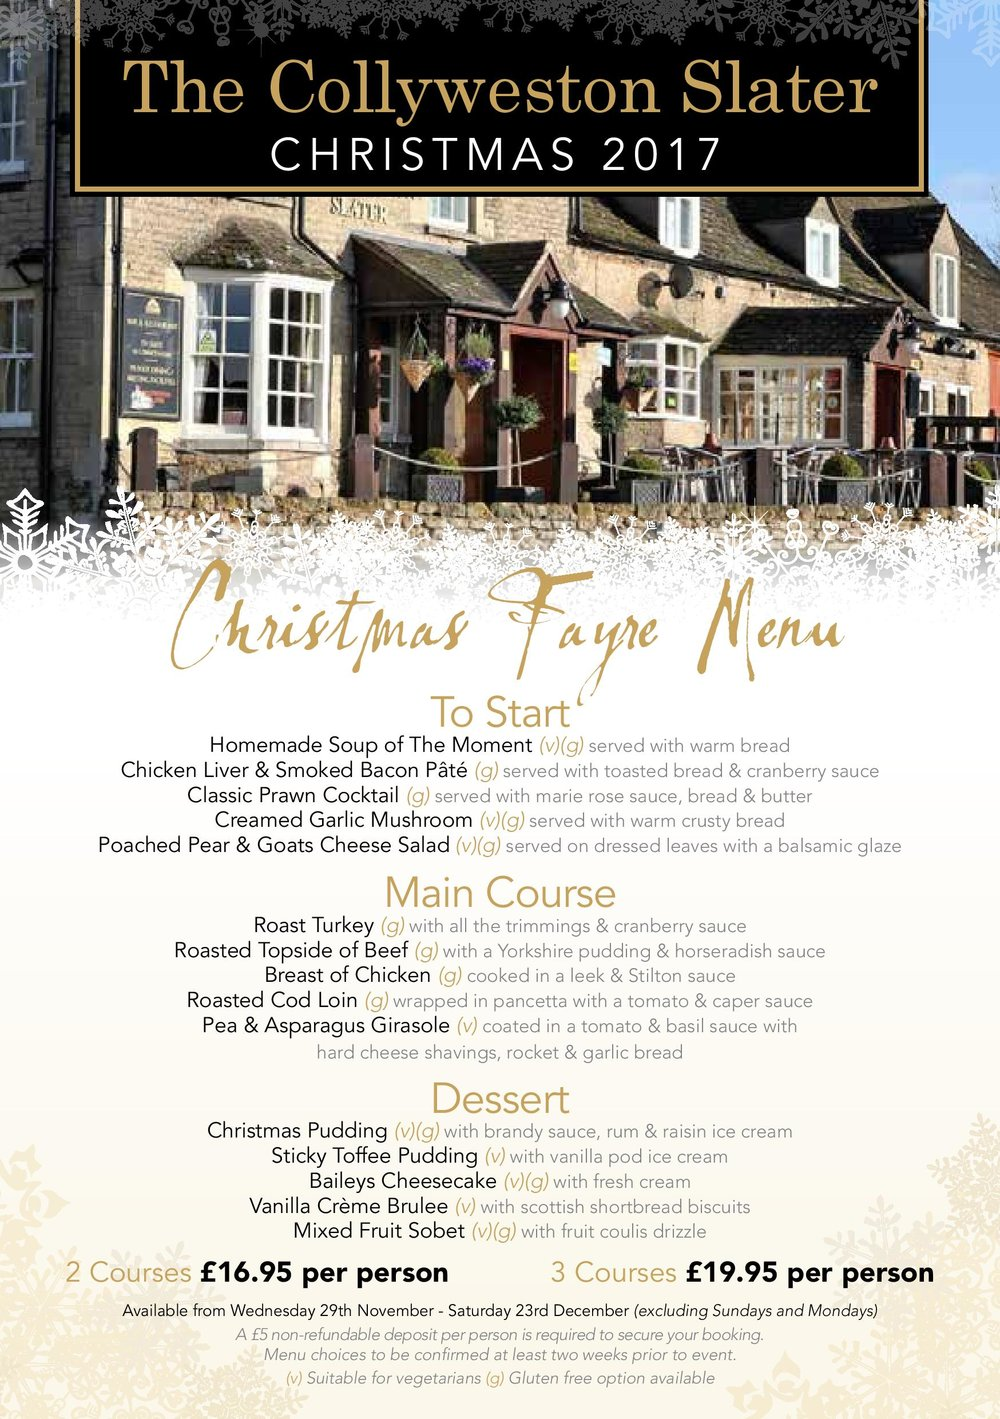 - Our Christmas Fayre menu will be served along our normal menus throughout December. This menu is pre-order only and a £5 per person deposit will be required to secure your booking.